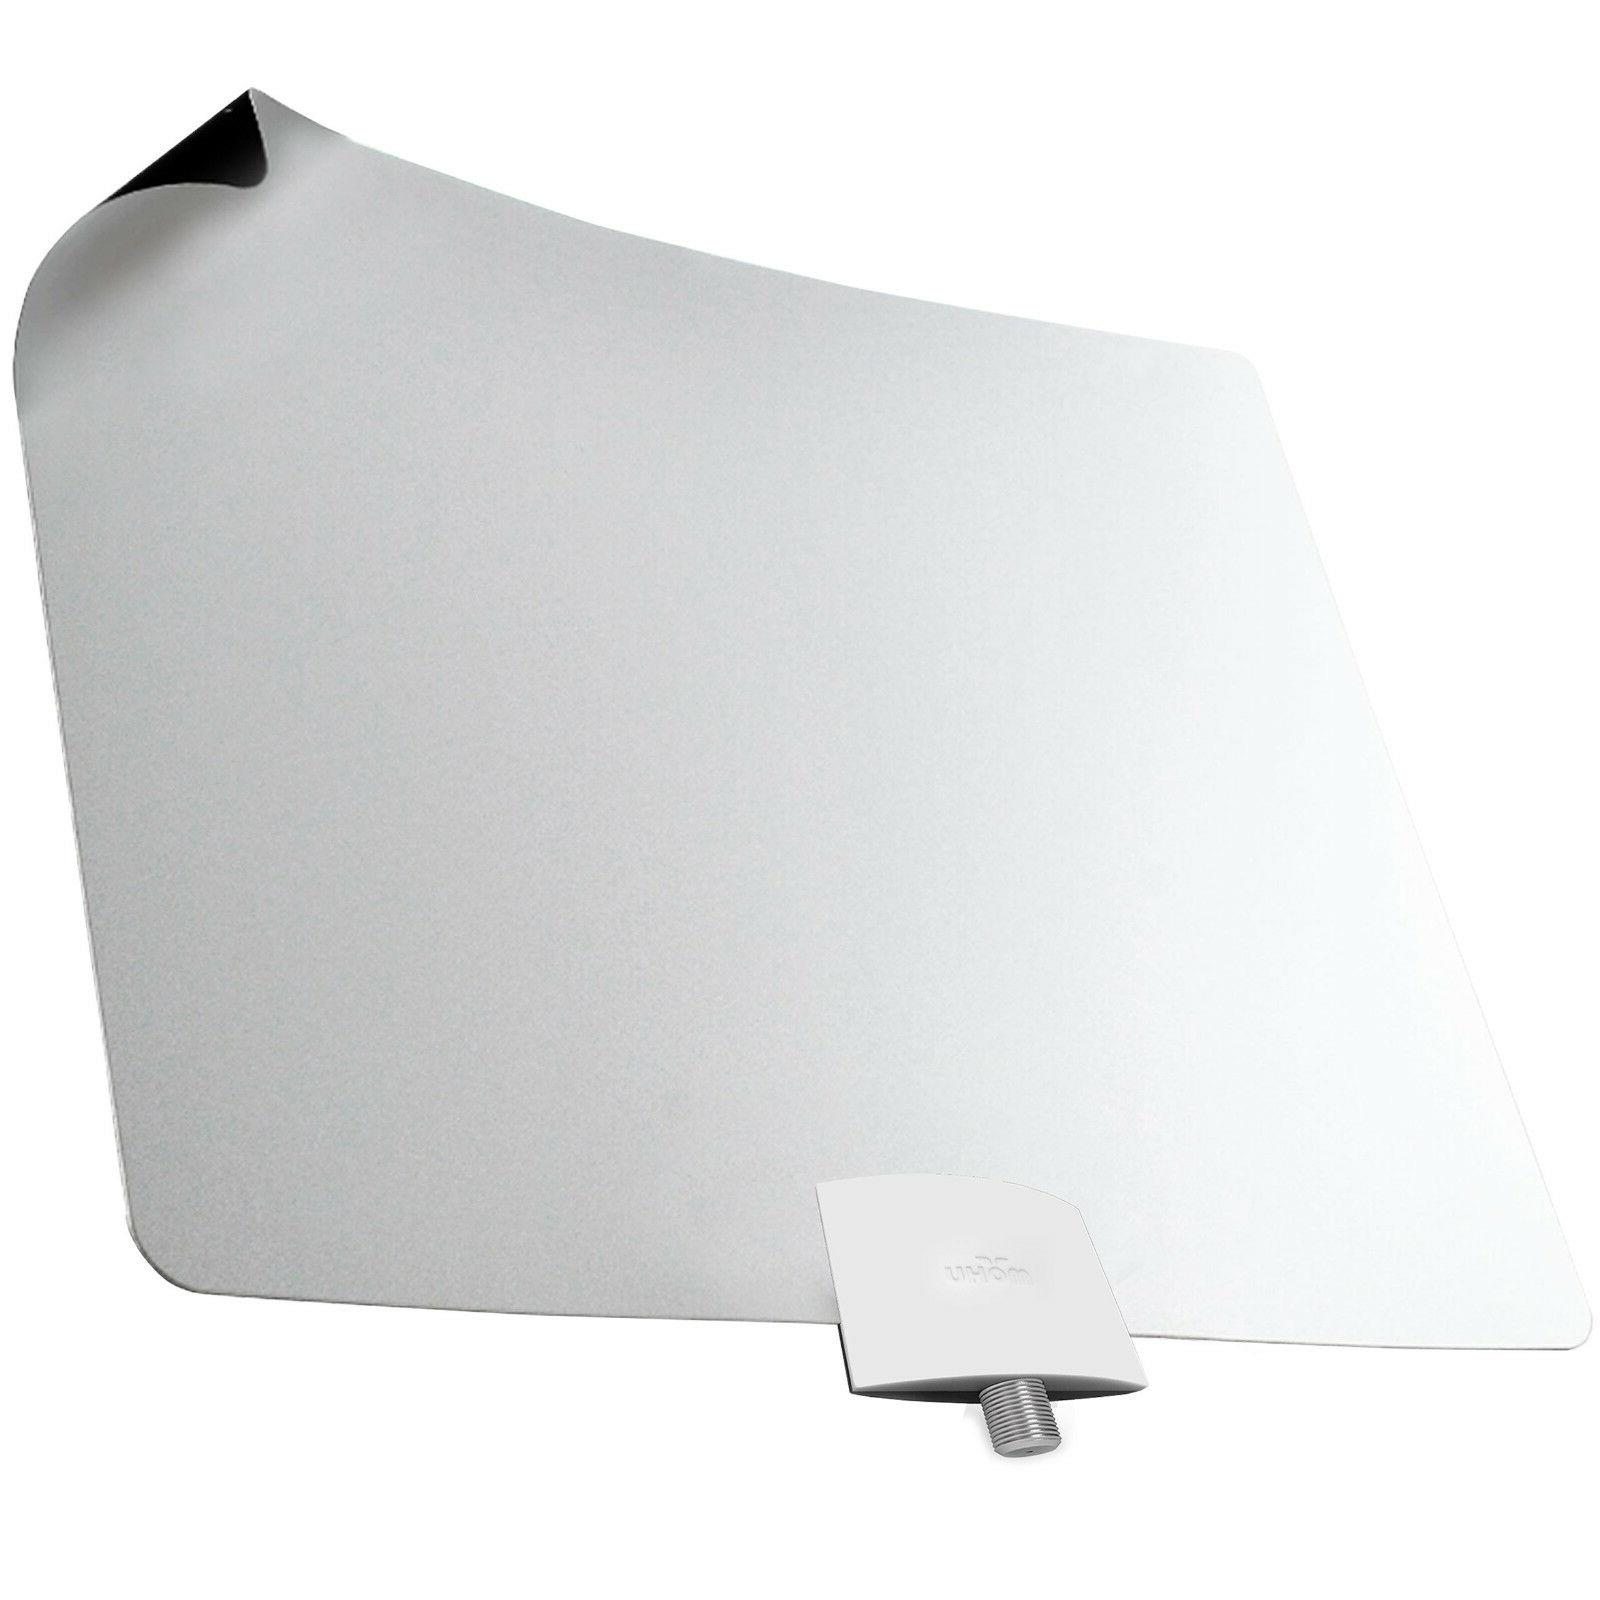 leaf 30 indoor hdtv antenna with pc